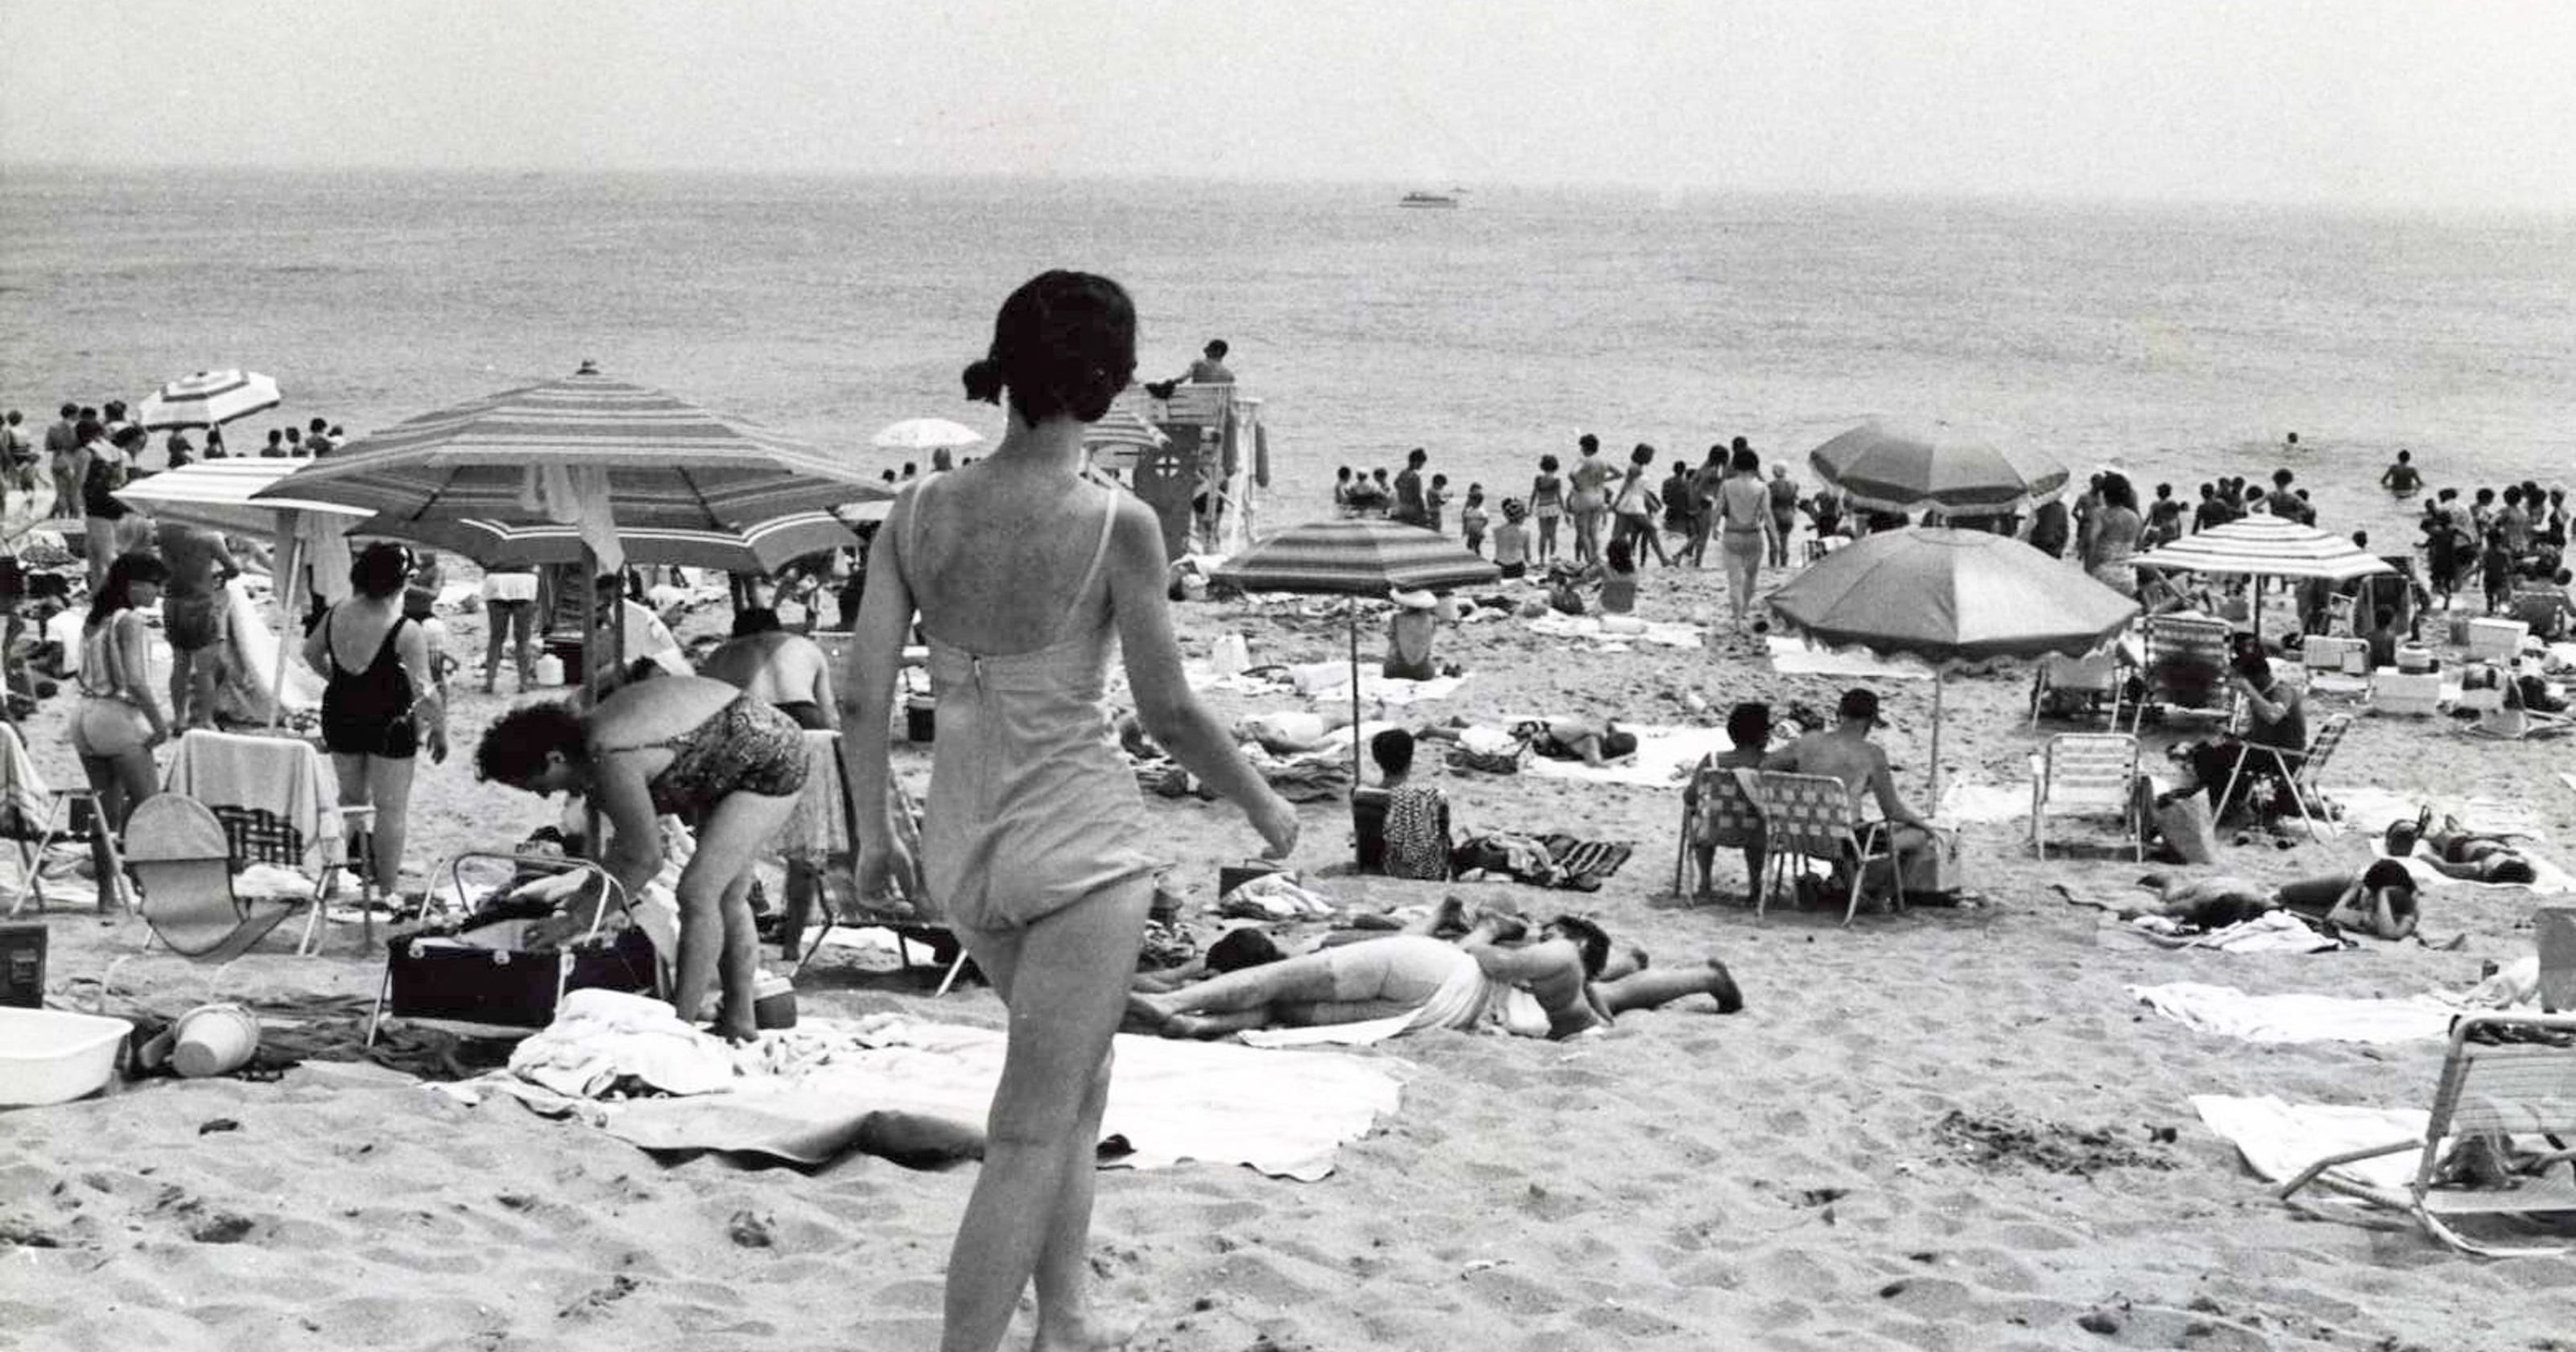 Sandy Hook Nj Beach Of The 1960s Photos